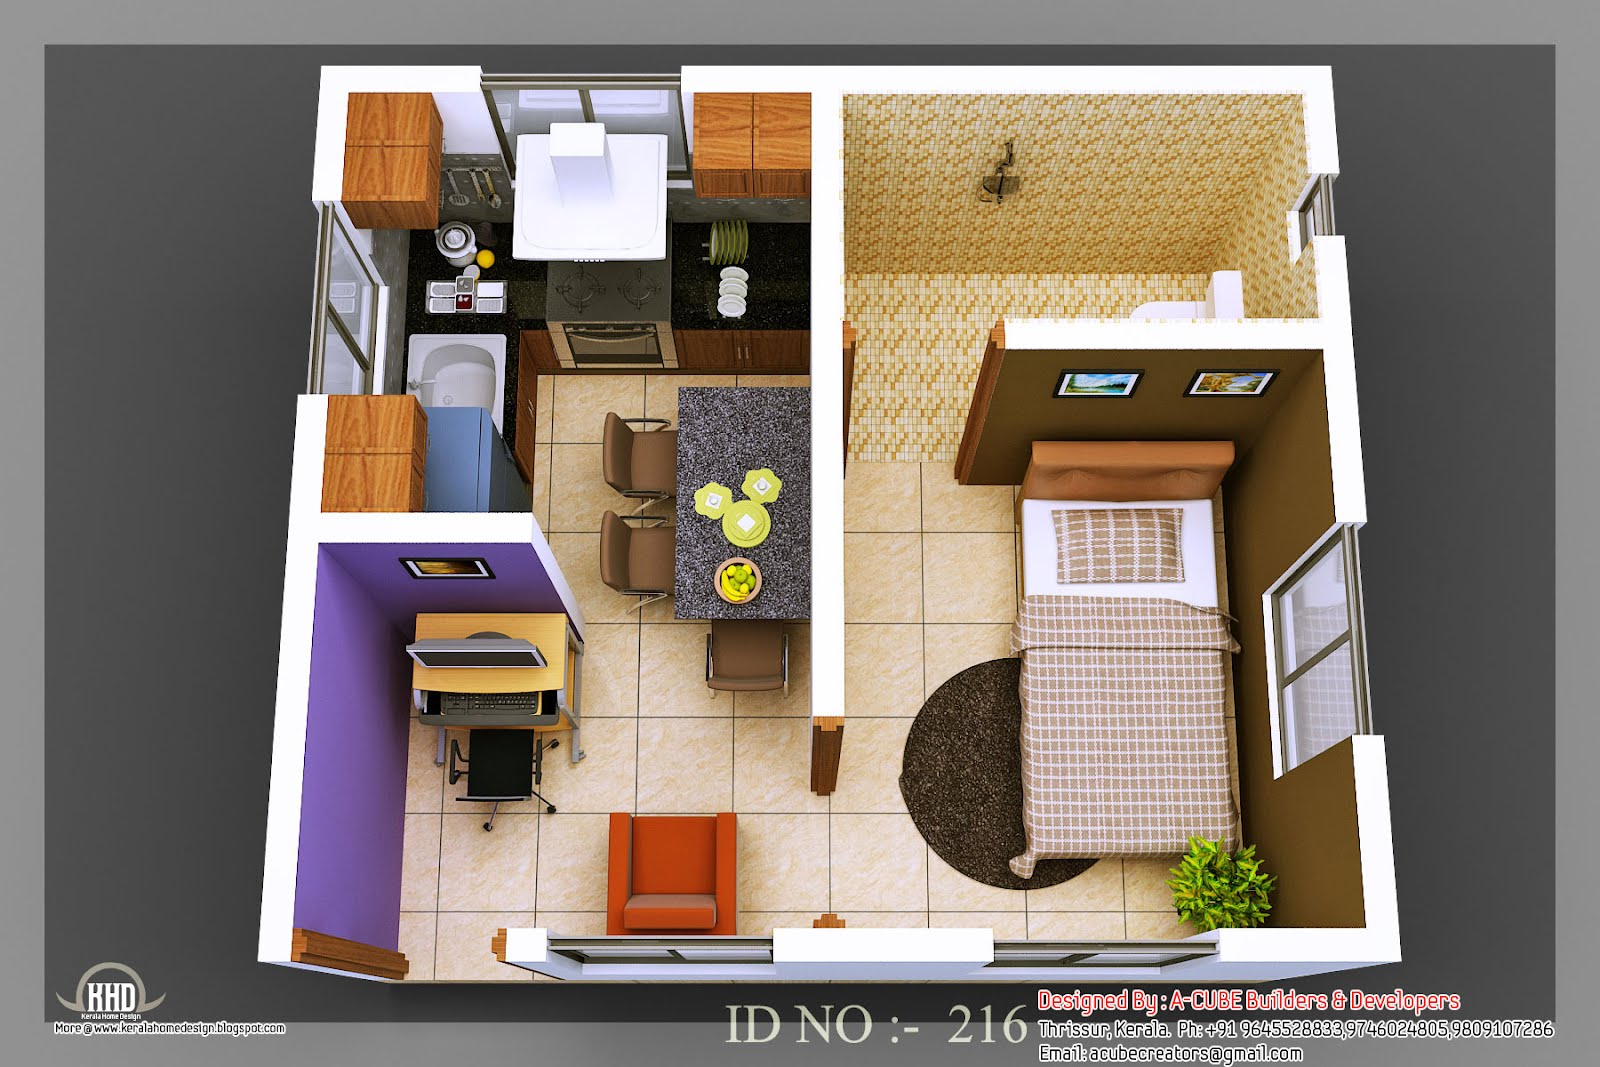 3d isometric views of small house plans kerala home for Idee per case piccole